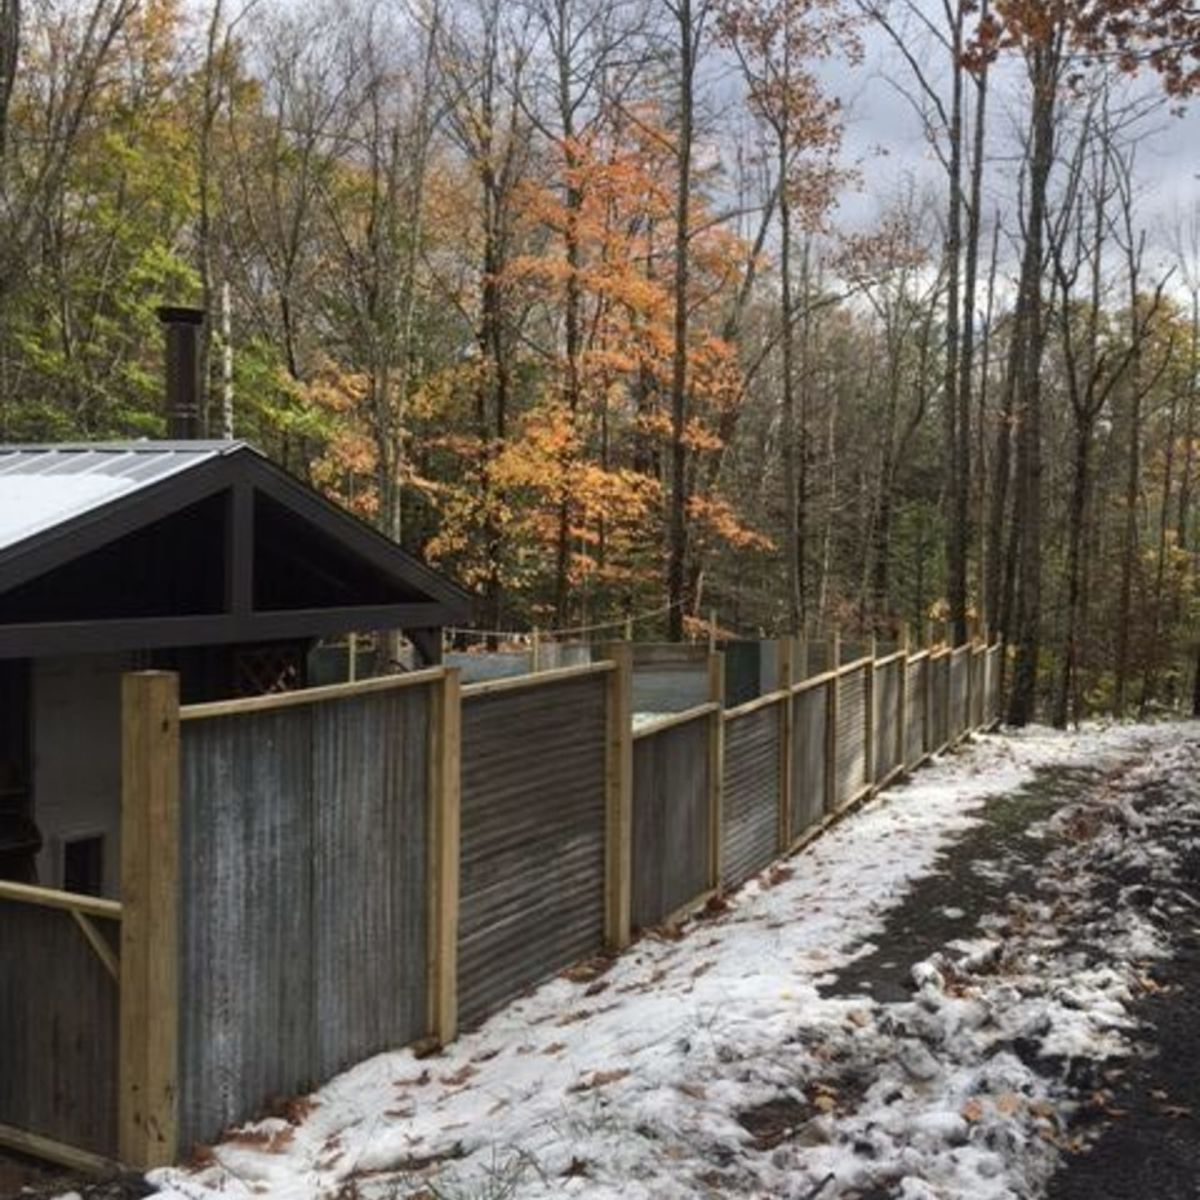 Whimsical Woodstock Tiny House - Tiny House for Sale in Woodstock, New York  - Tiny House Listings